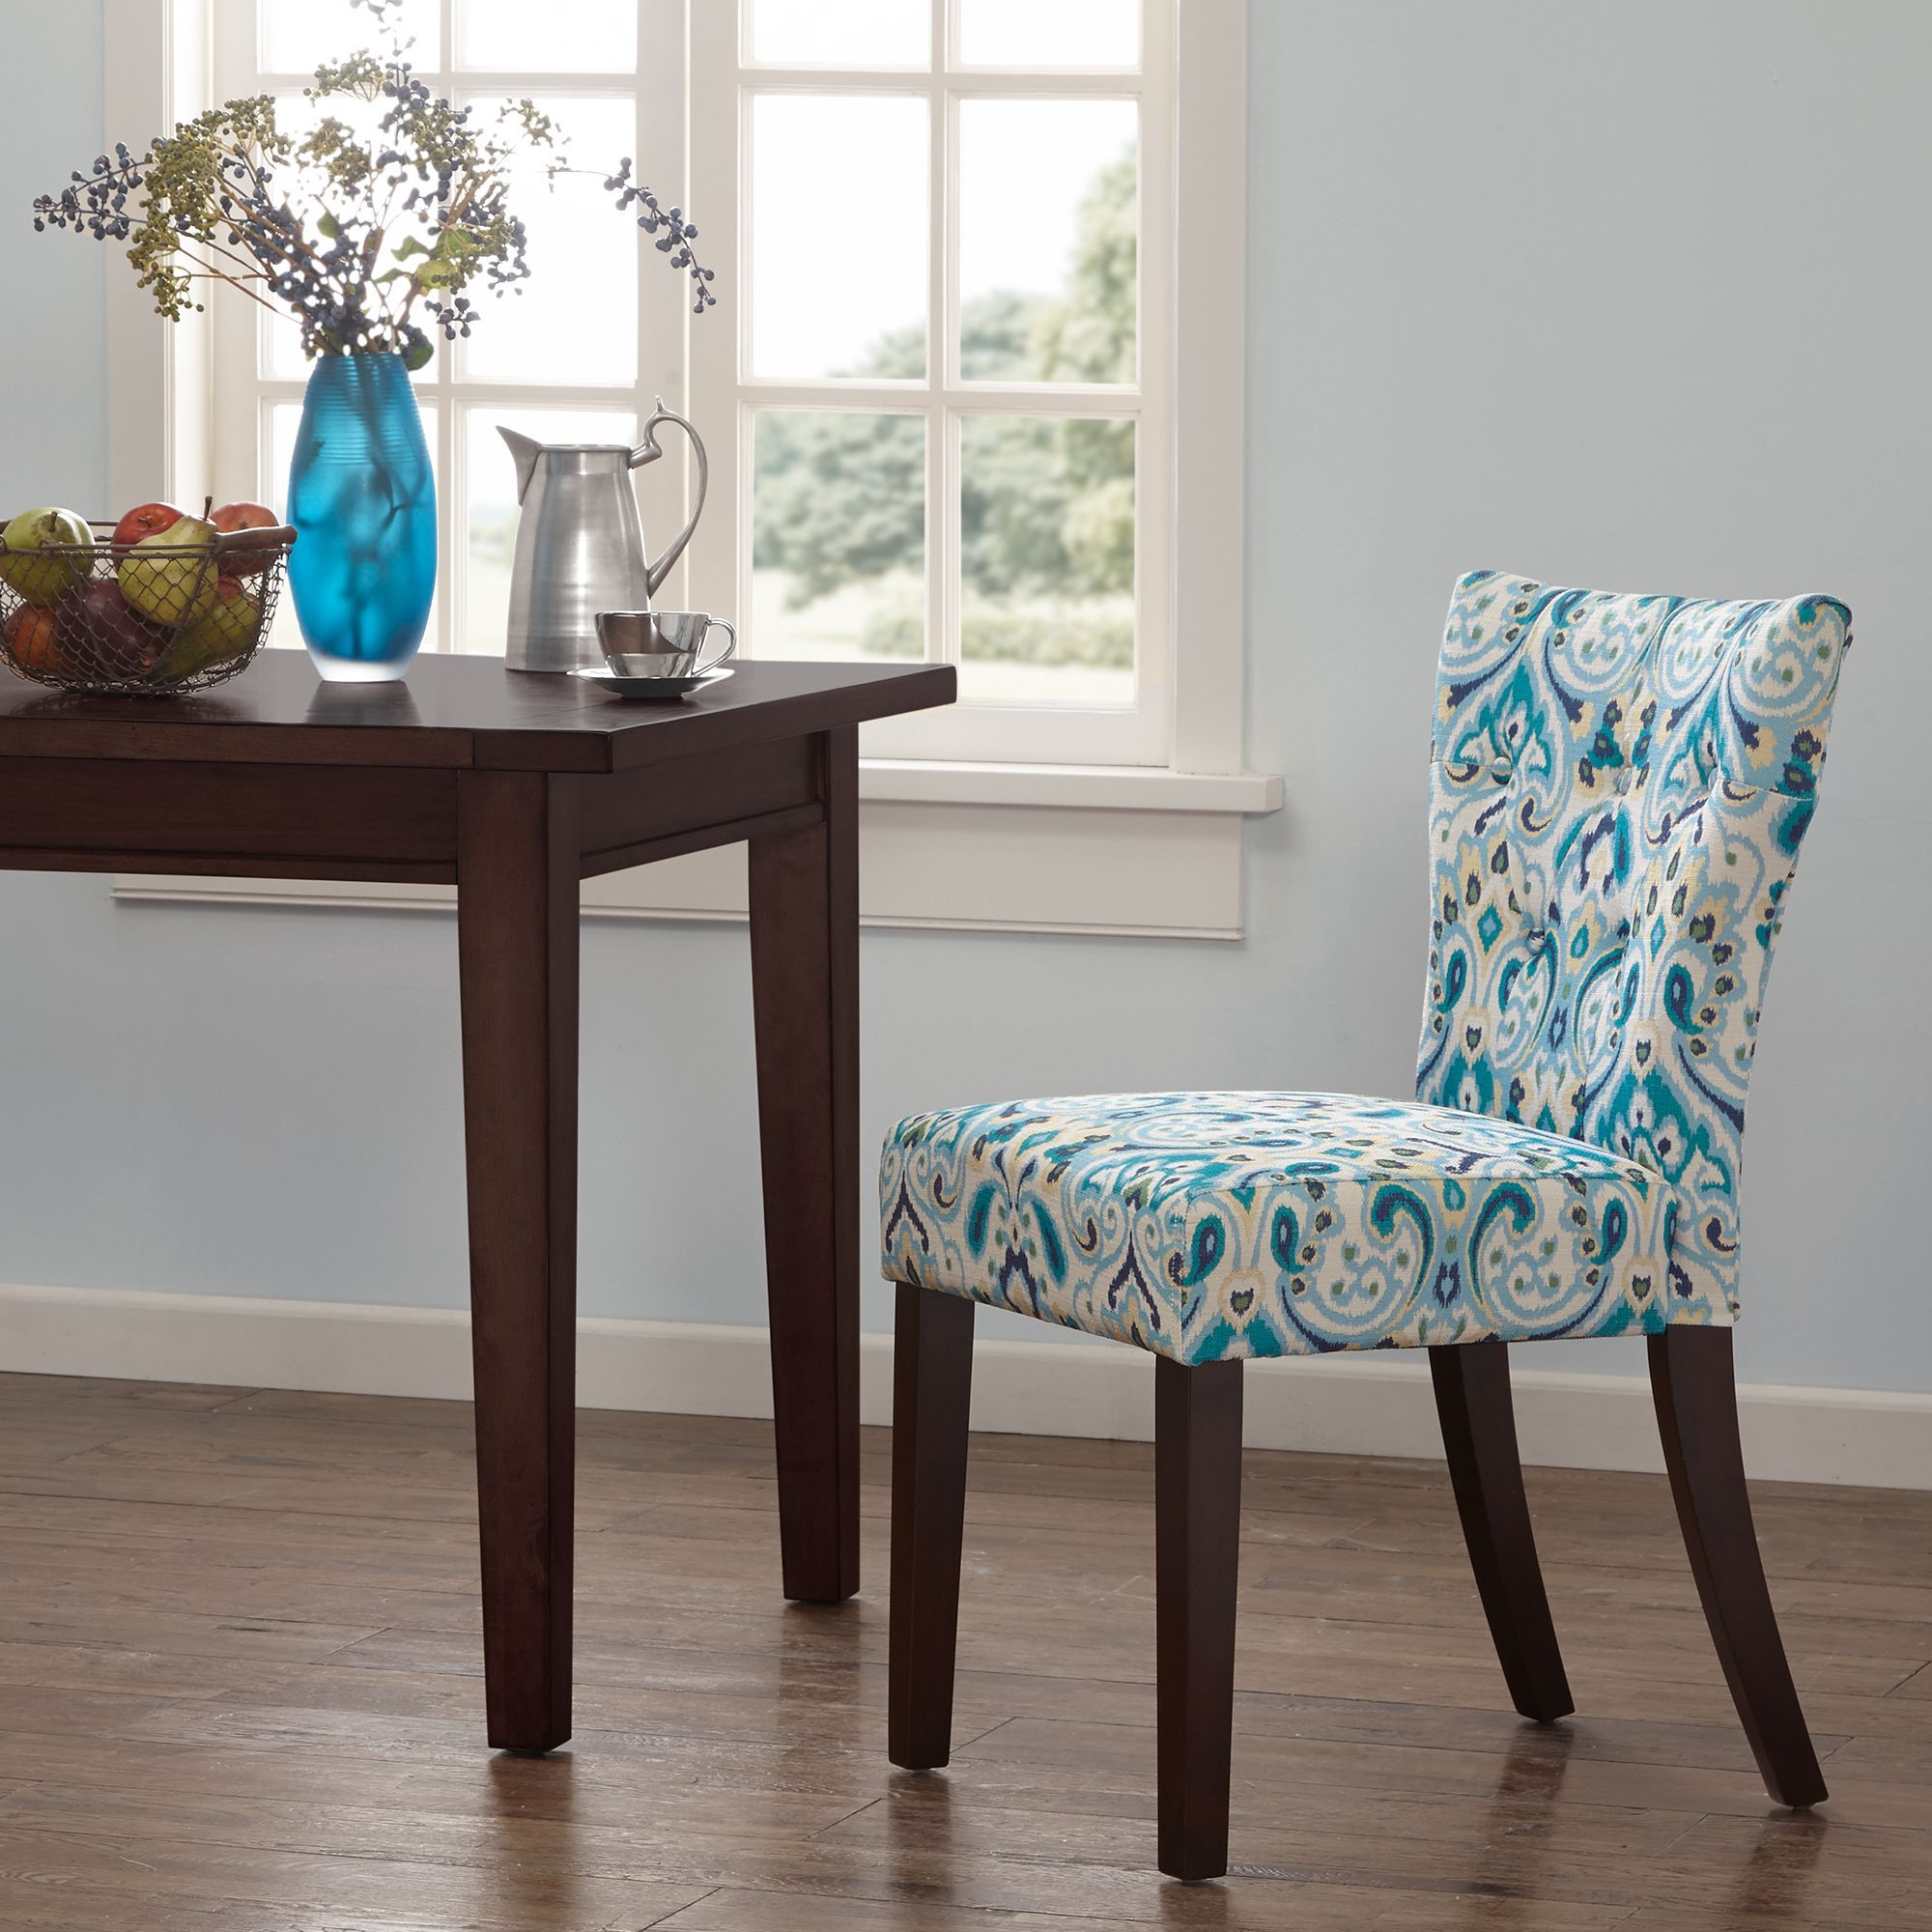 Madison Park Hayes Tufted Back Dining Chair Set of 2 19W x 23D